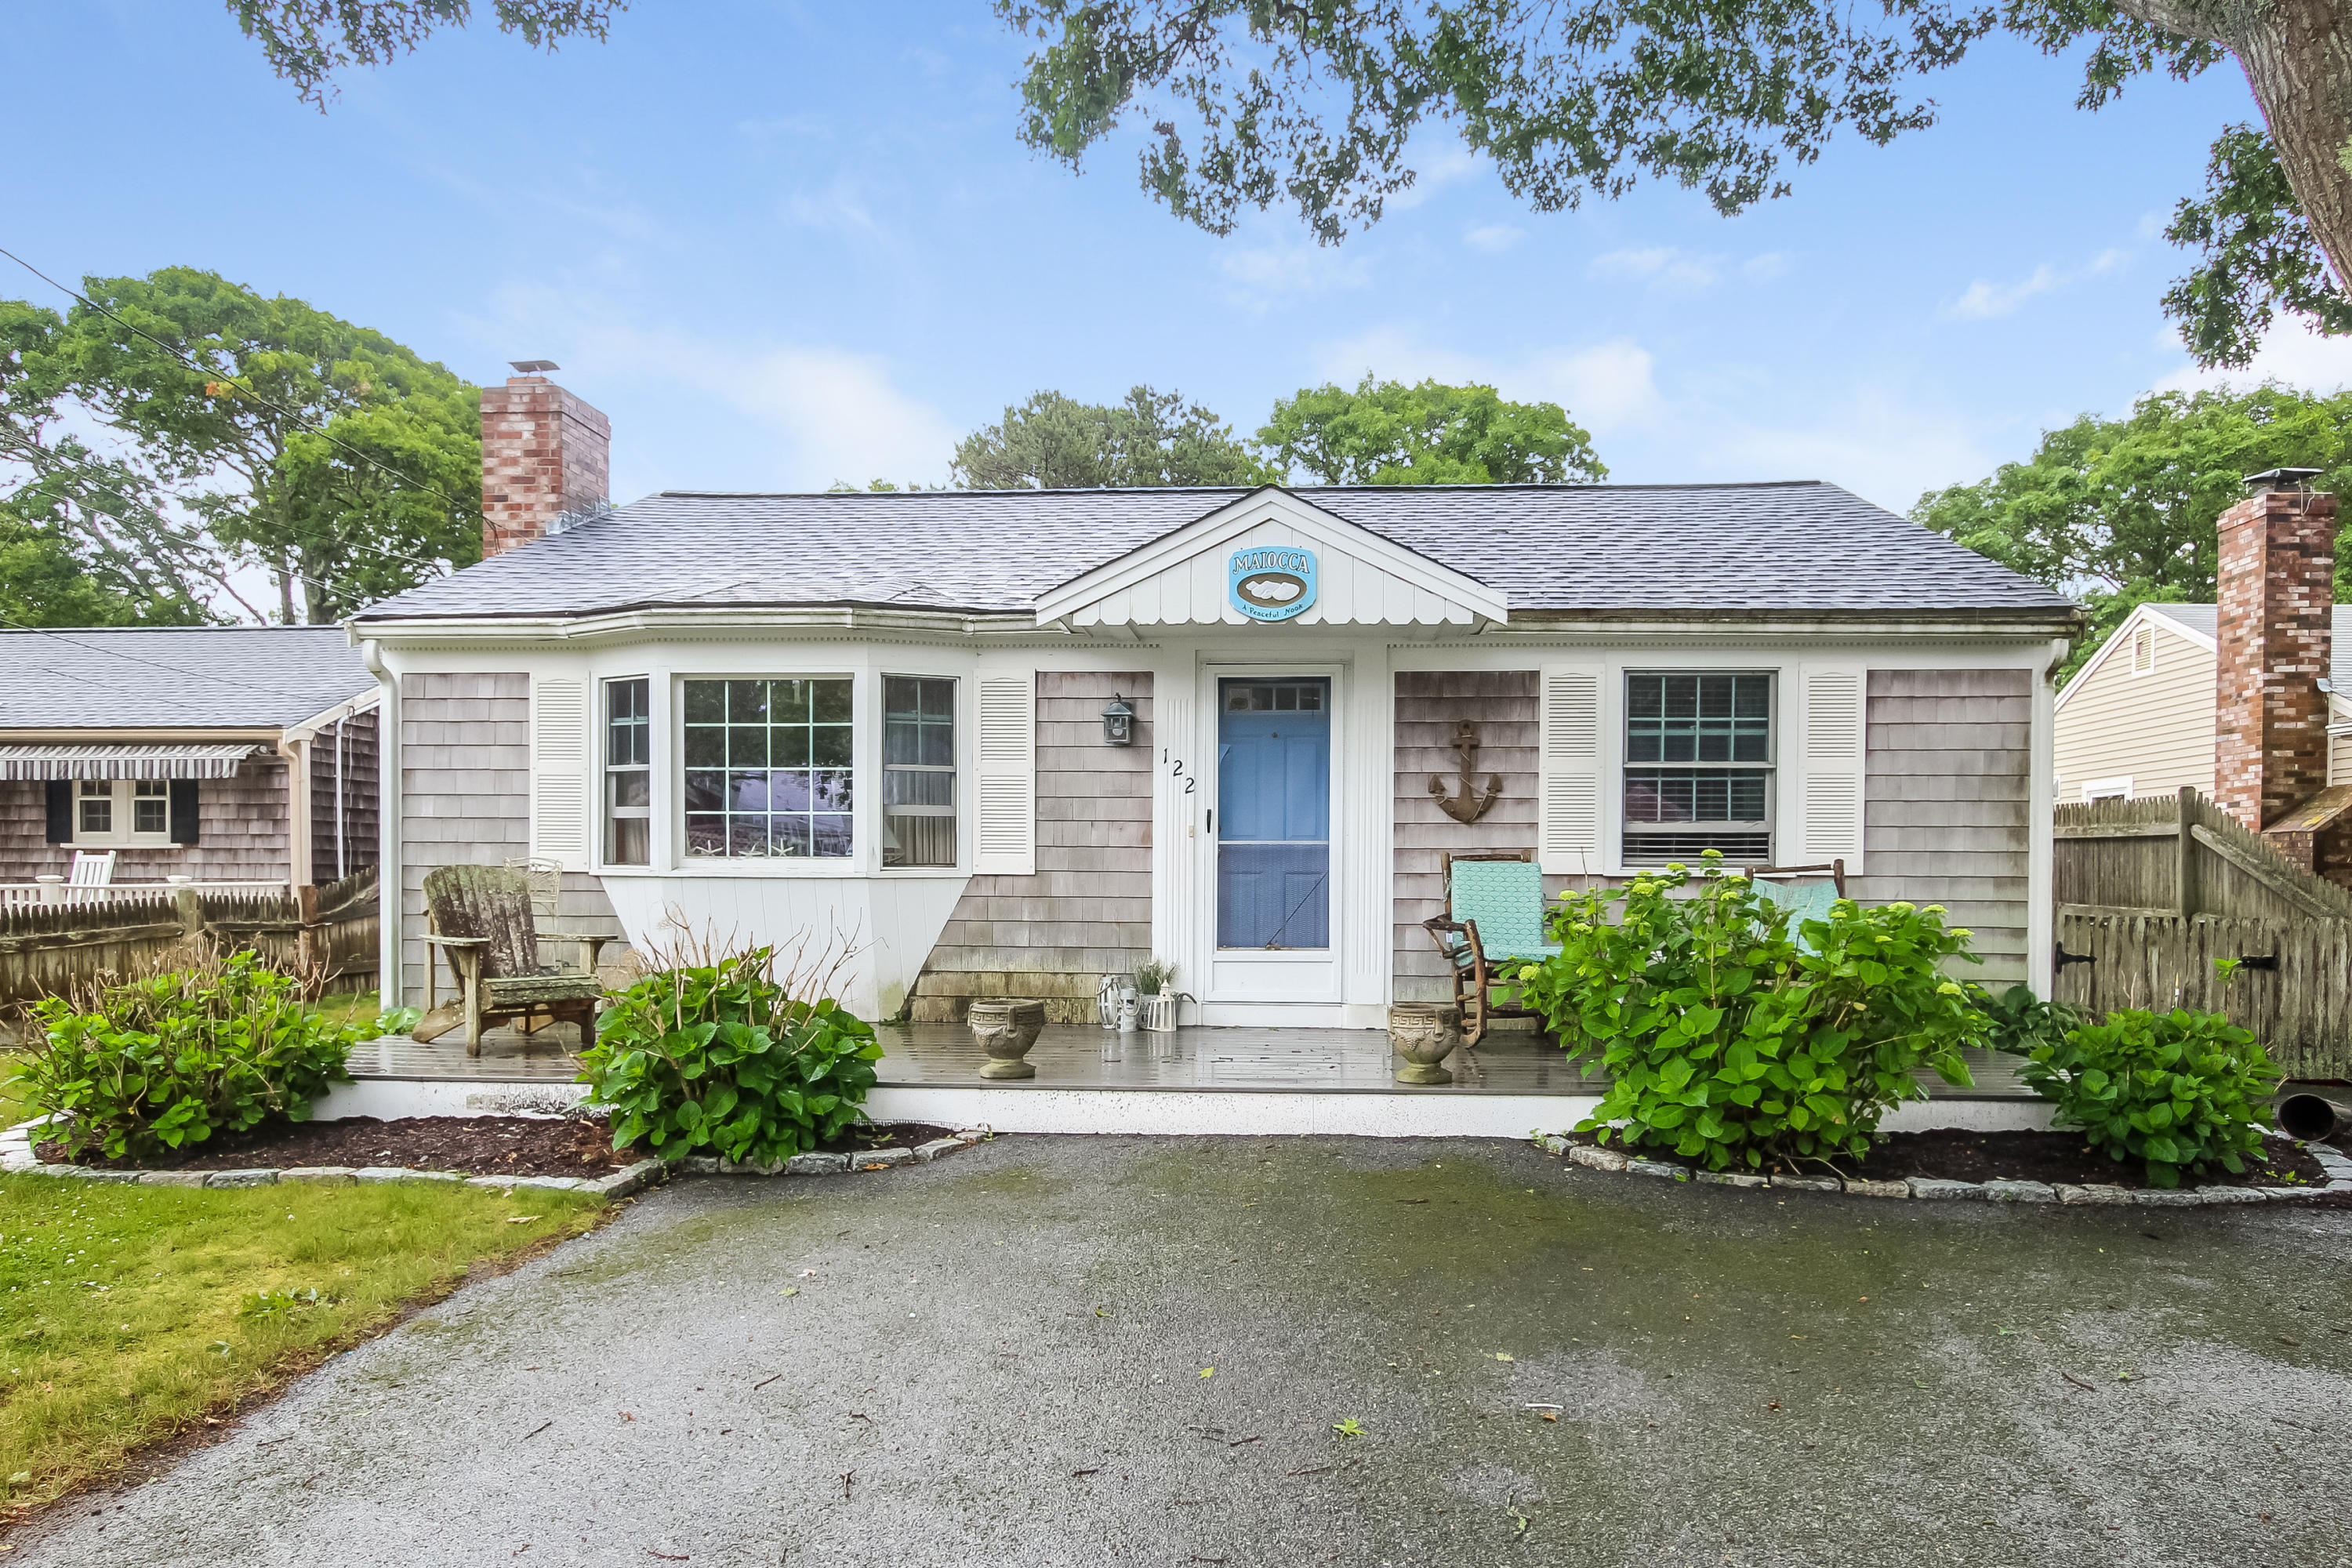 122 Lewis Road, West Yarmouth MA, 02673 details